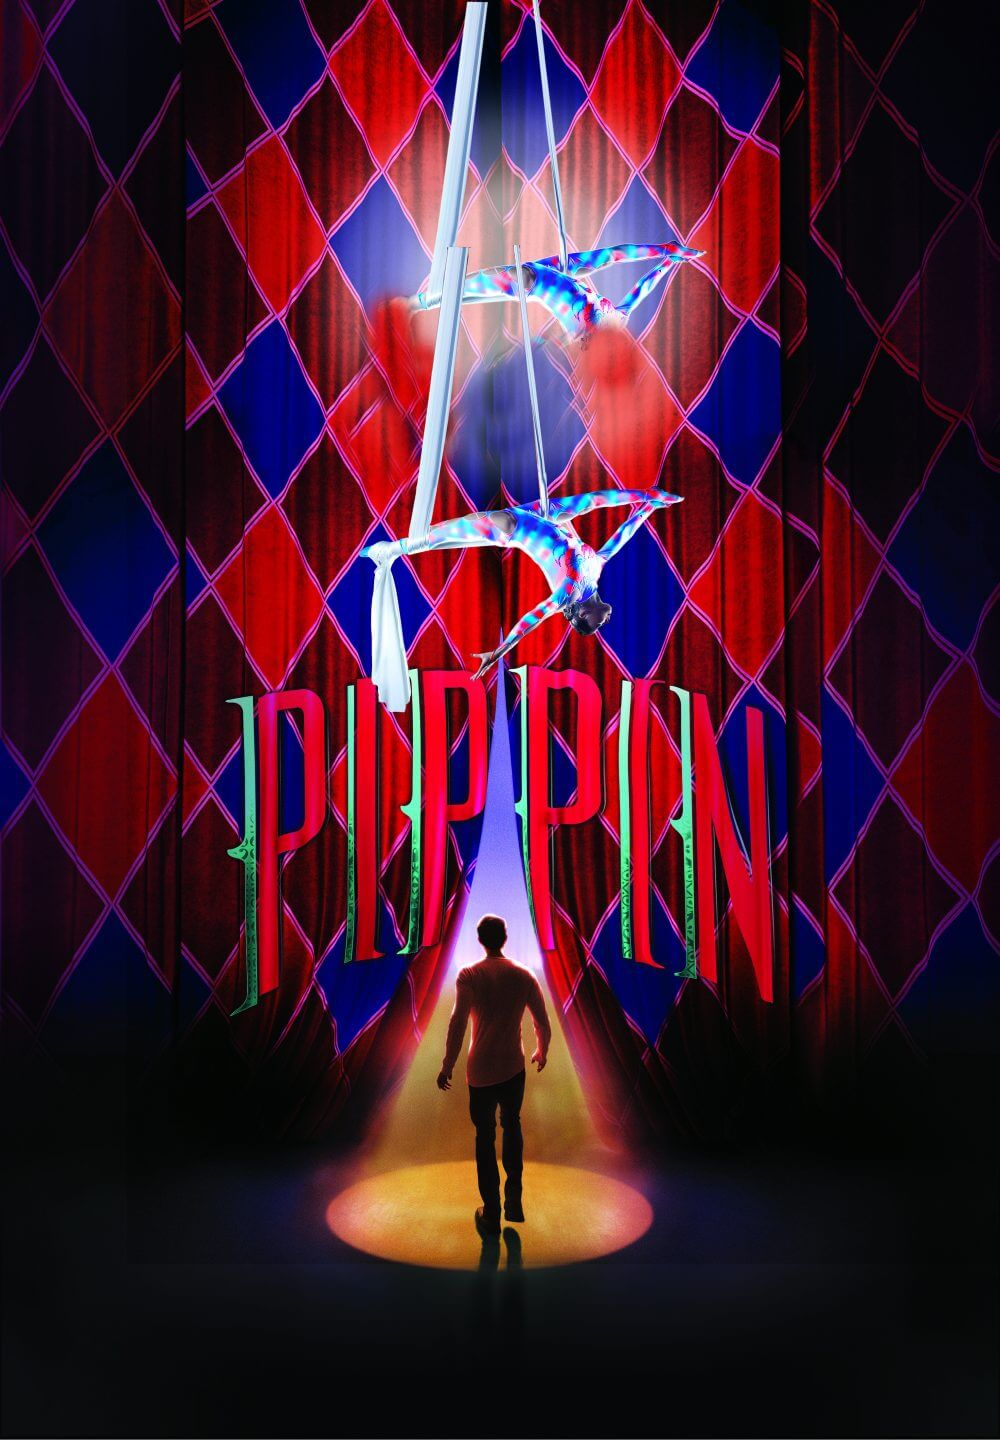 Pippin the musical brings high-flying acrobats on April 15